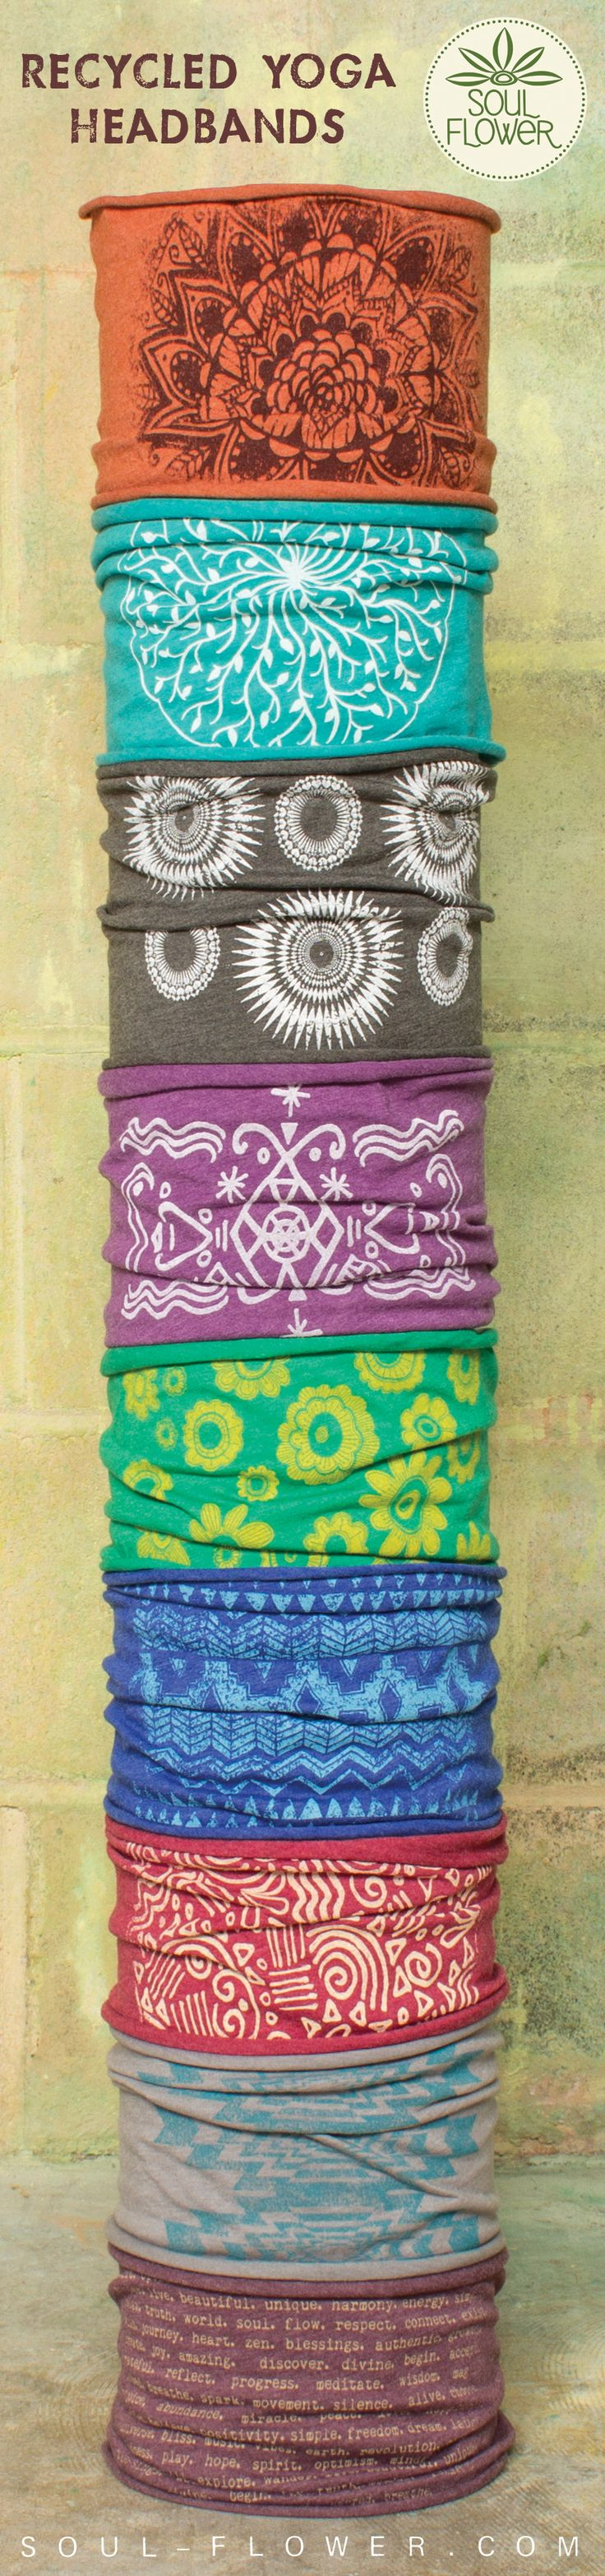 Recycled #Yoga Headbands  #letlifeflow #soulflowercontest